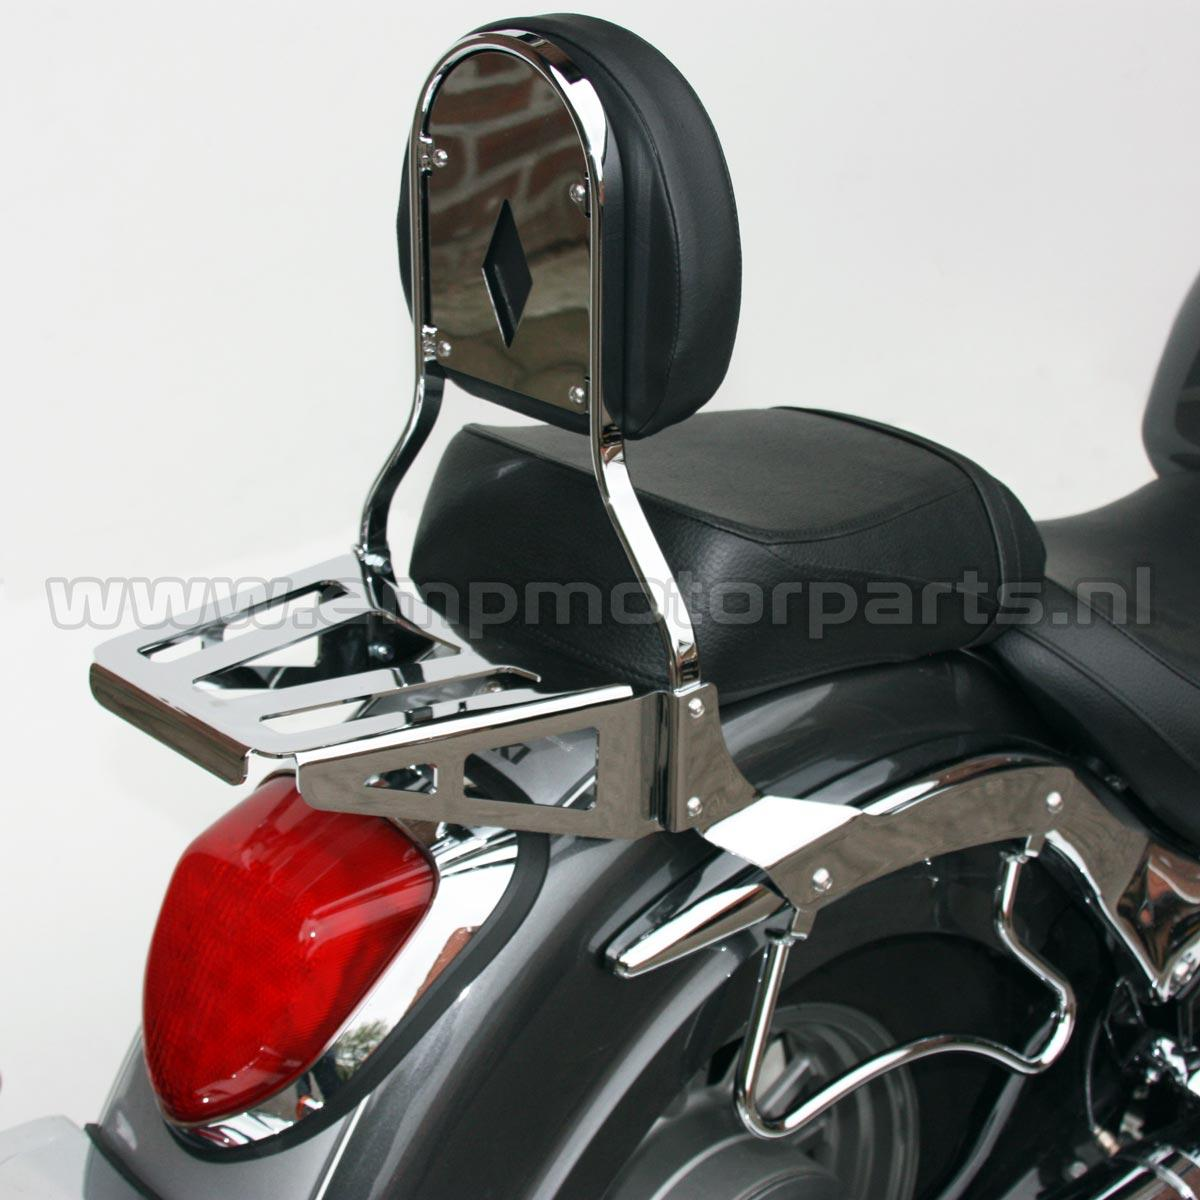 Luggage carrier sets ##Suzuki C 800 B/LC low as 2014^^ Suzuki M 800 (M50) 2005 till 2009^^ Suzuki C 800 C /LC (C50) till 2012^^ Suzuki VL 800 Volusia all models.$$ (2)